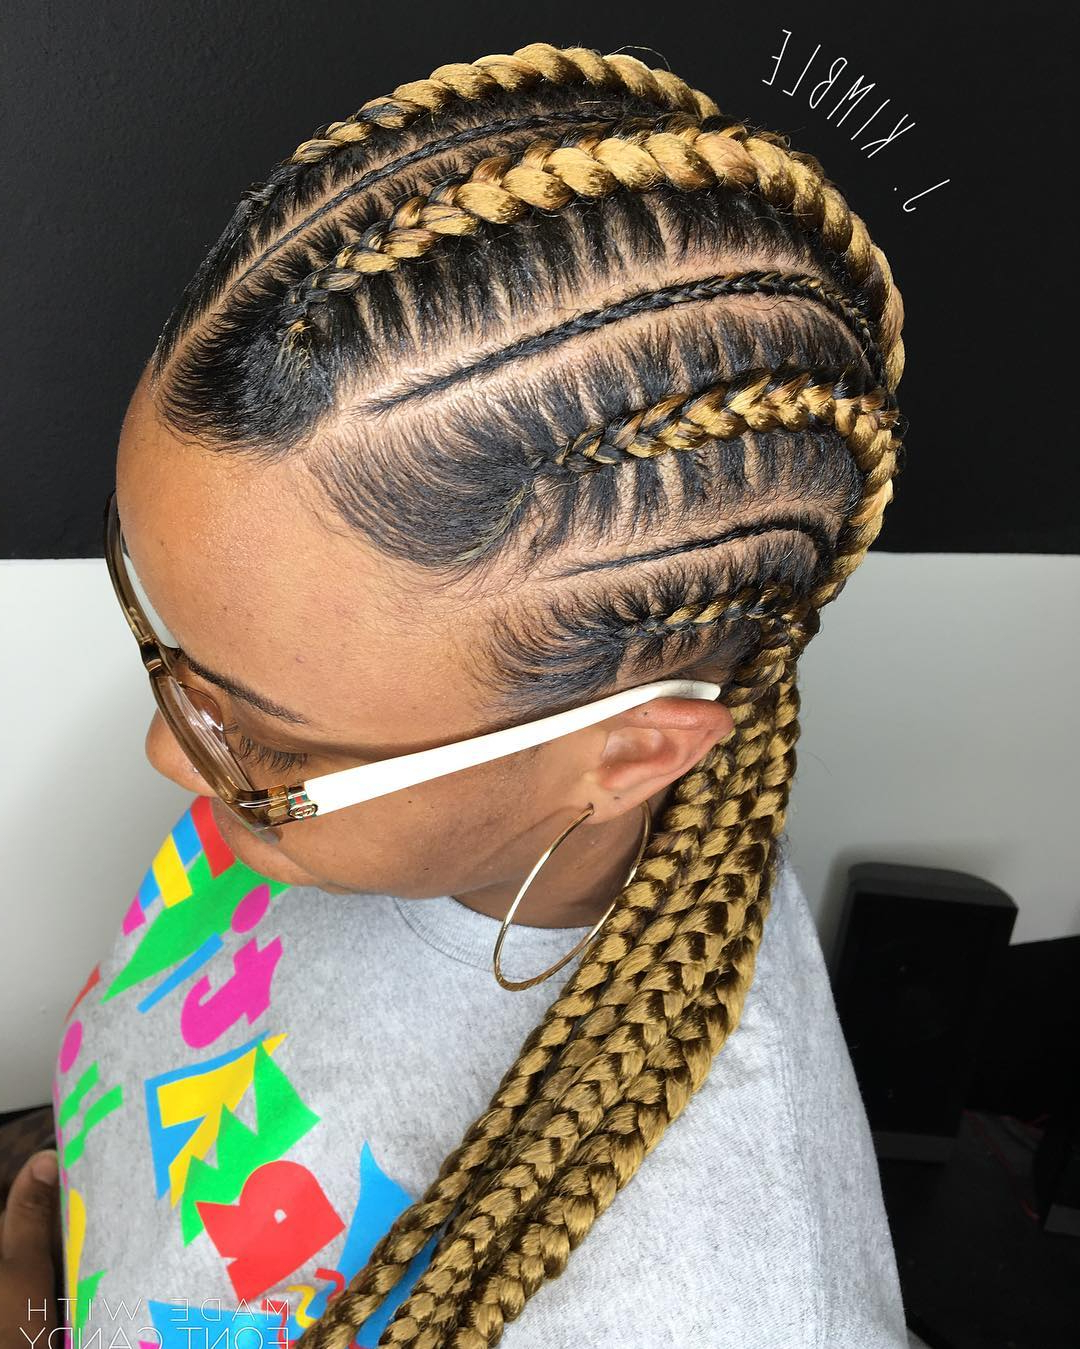 70 Best Black Braided Hairstyles That Turn Heads In 2019 For Latest Side Cornrows Braided Hairstyles (Gallery 5 of 20)